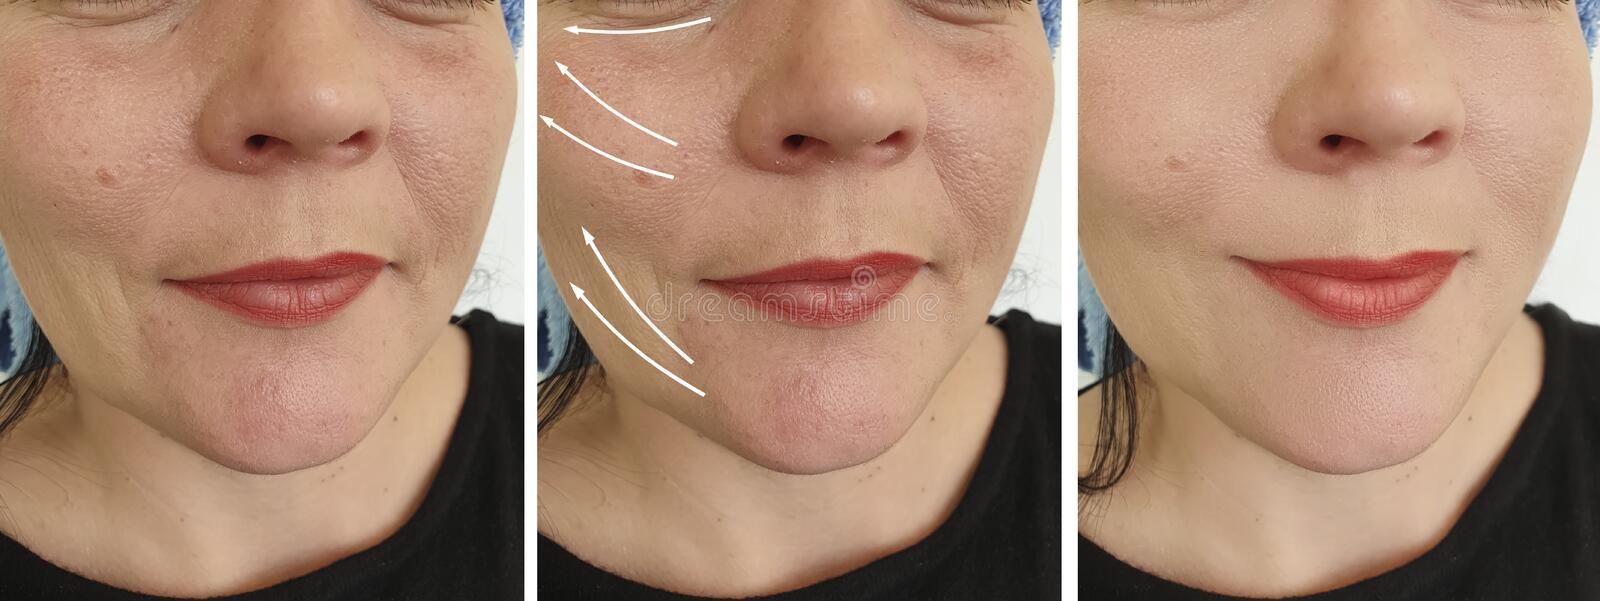 Woman wrinkles face results  arrow  collage correction lifting  contour tension  before and after contrast treatment. Woman wrinkles face before and after stock image